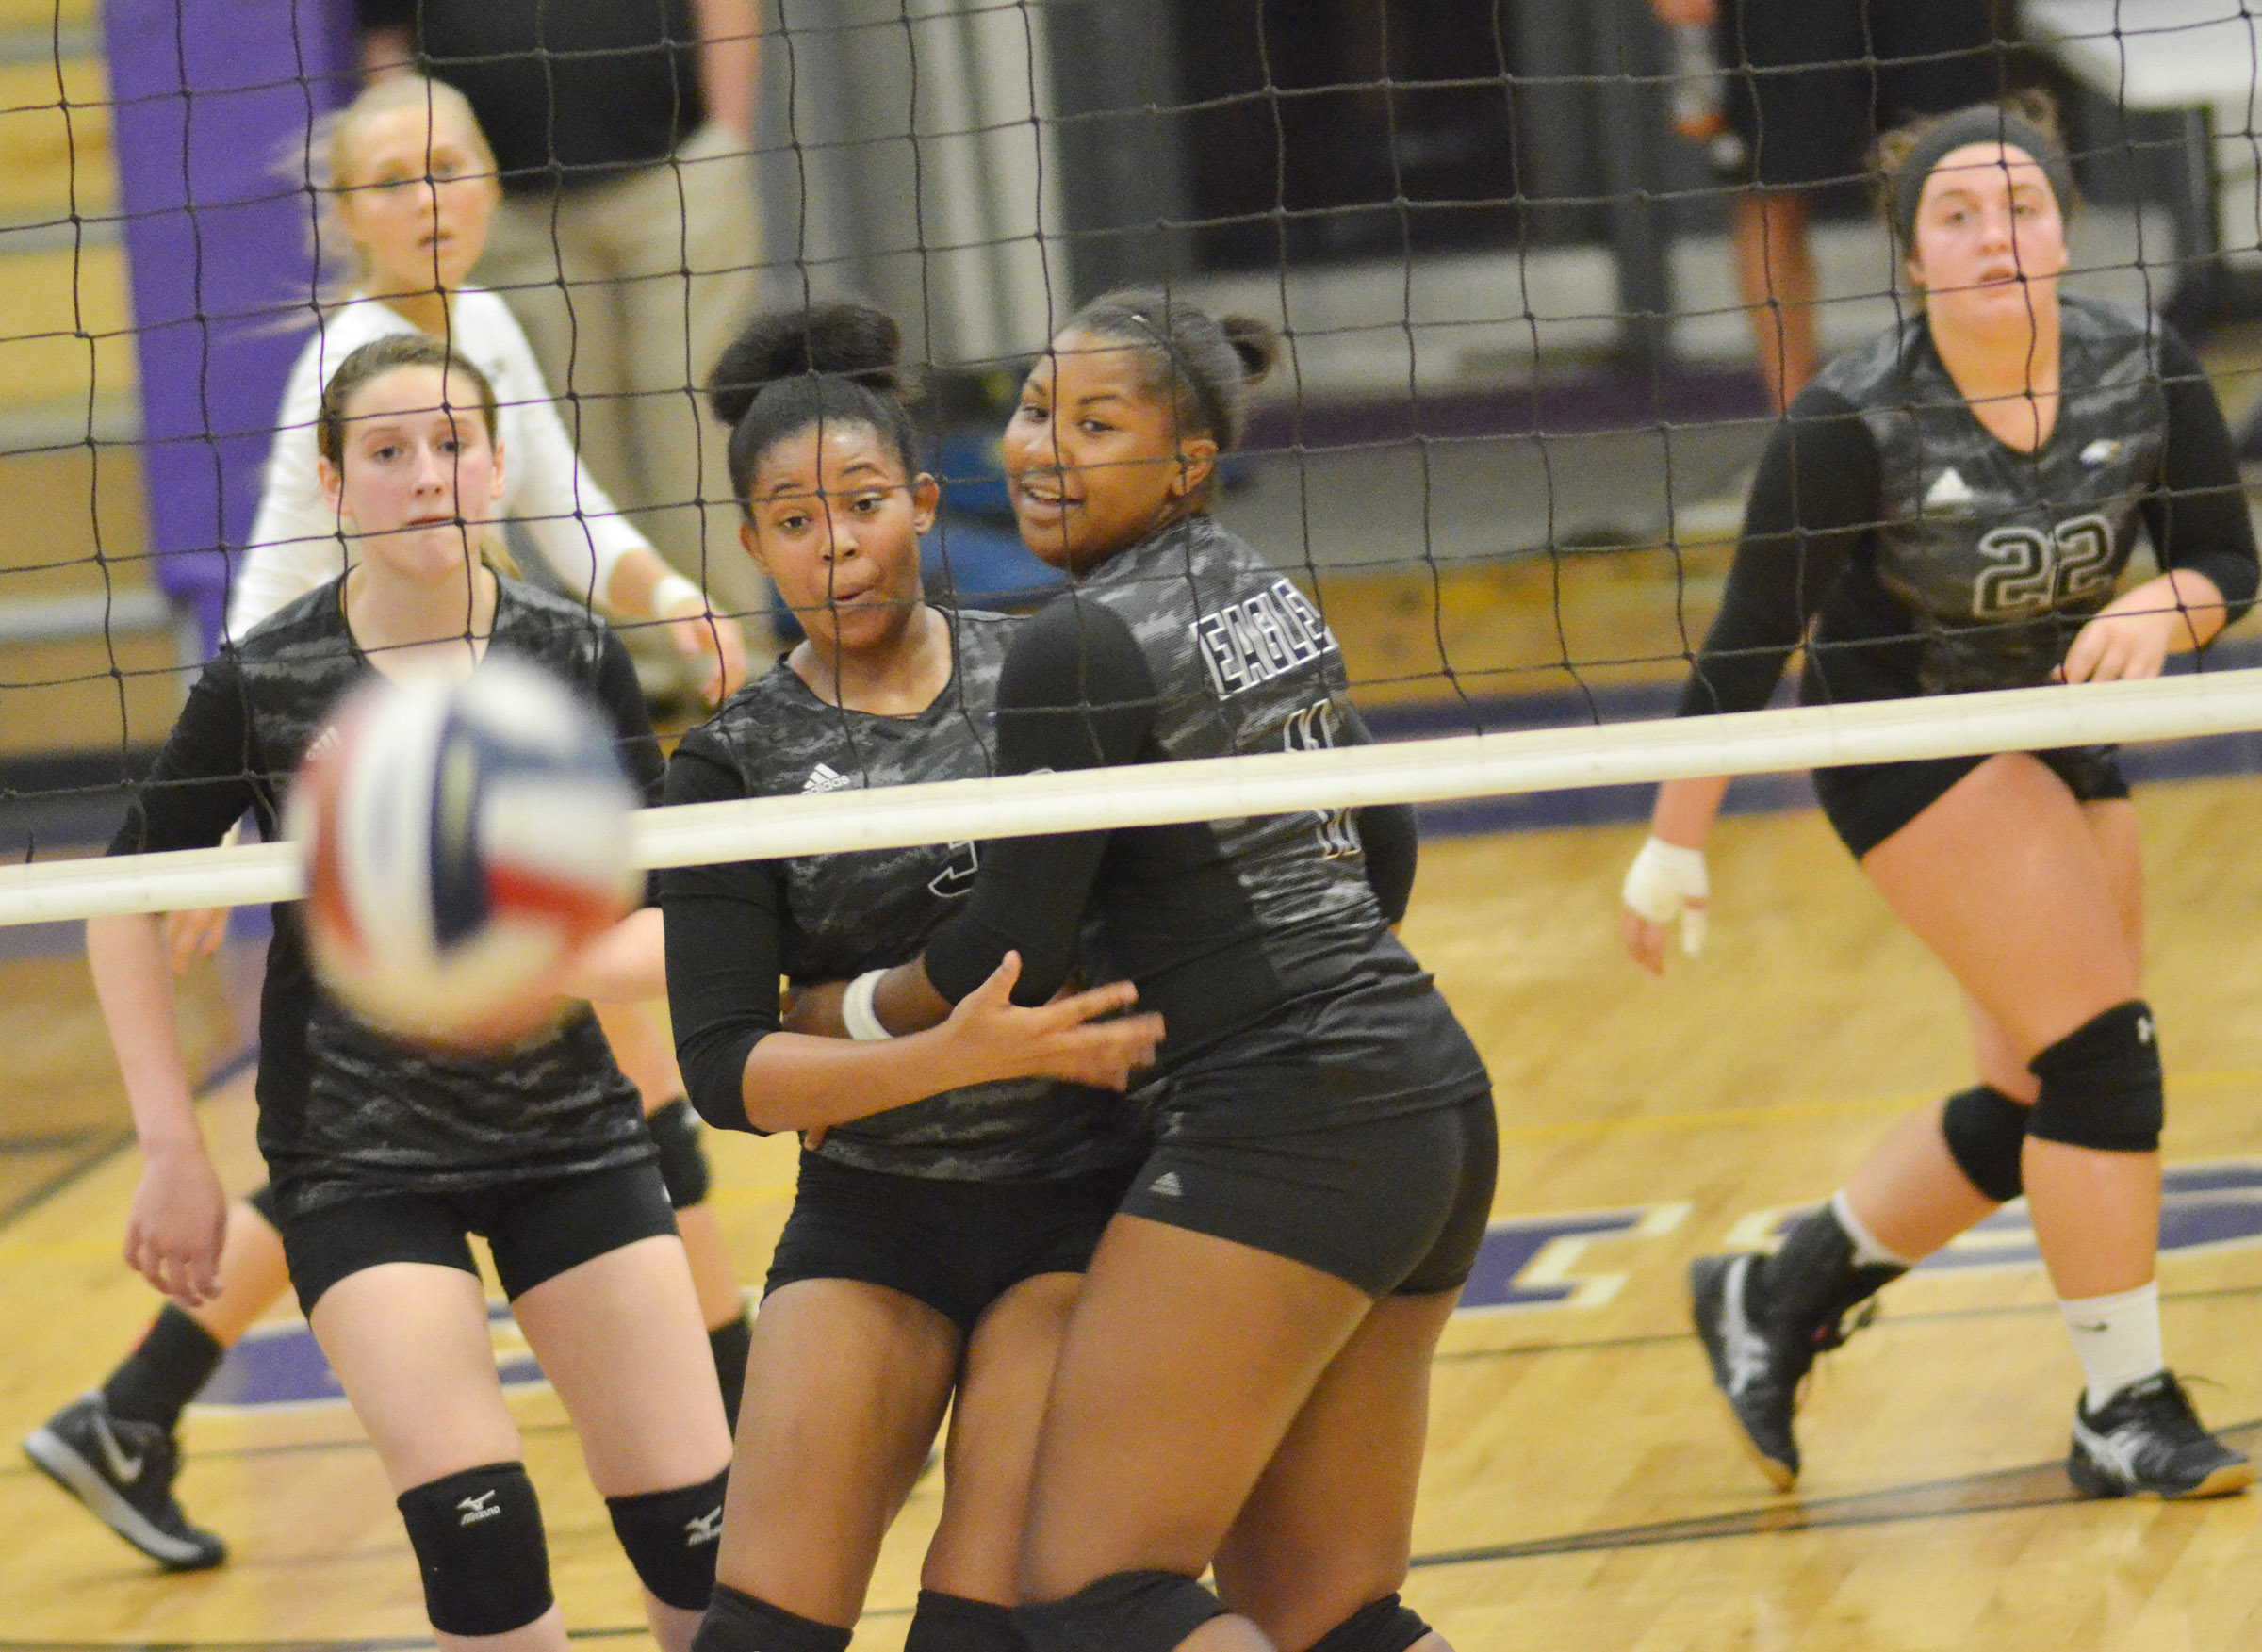 CHS seniors Vonnea Smith, center, and Kiyah Barnett collide as they watch the ball.